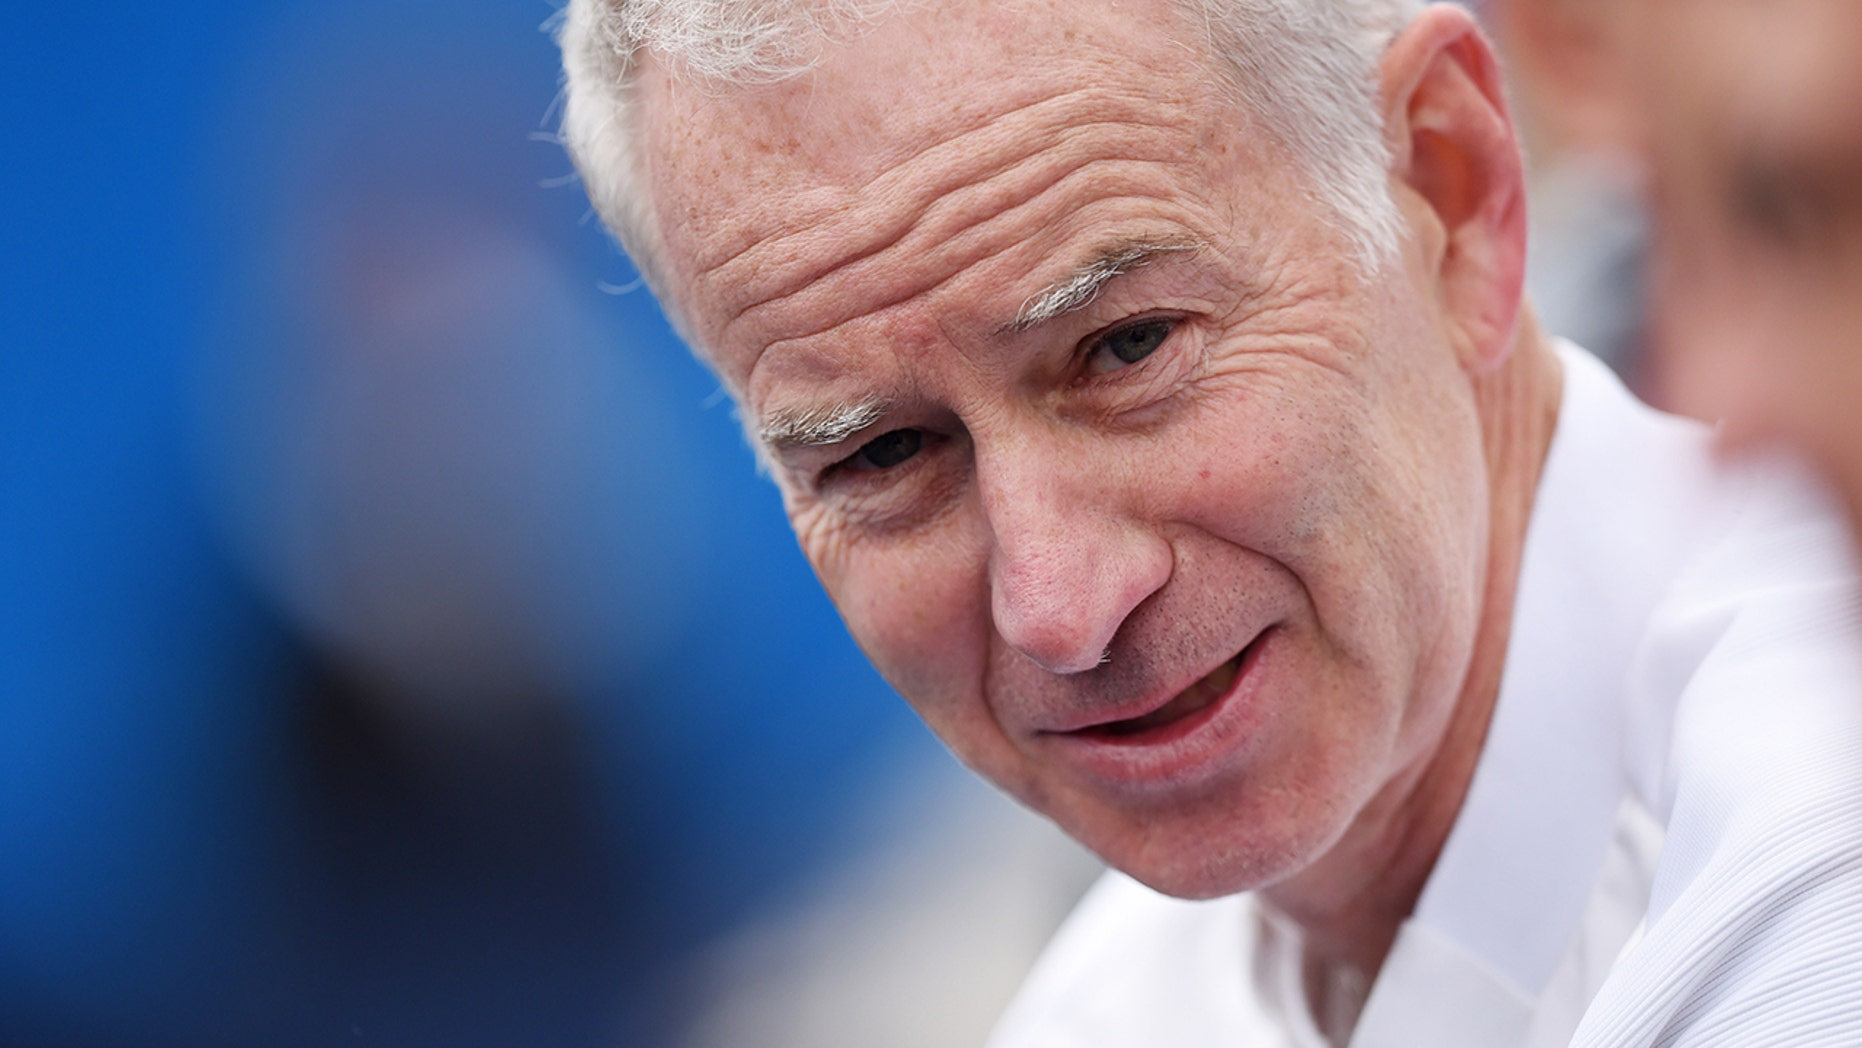 John McEnroe says Donald Trump offered him $1 million to play a match against one of the Williams' sisters.